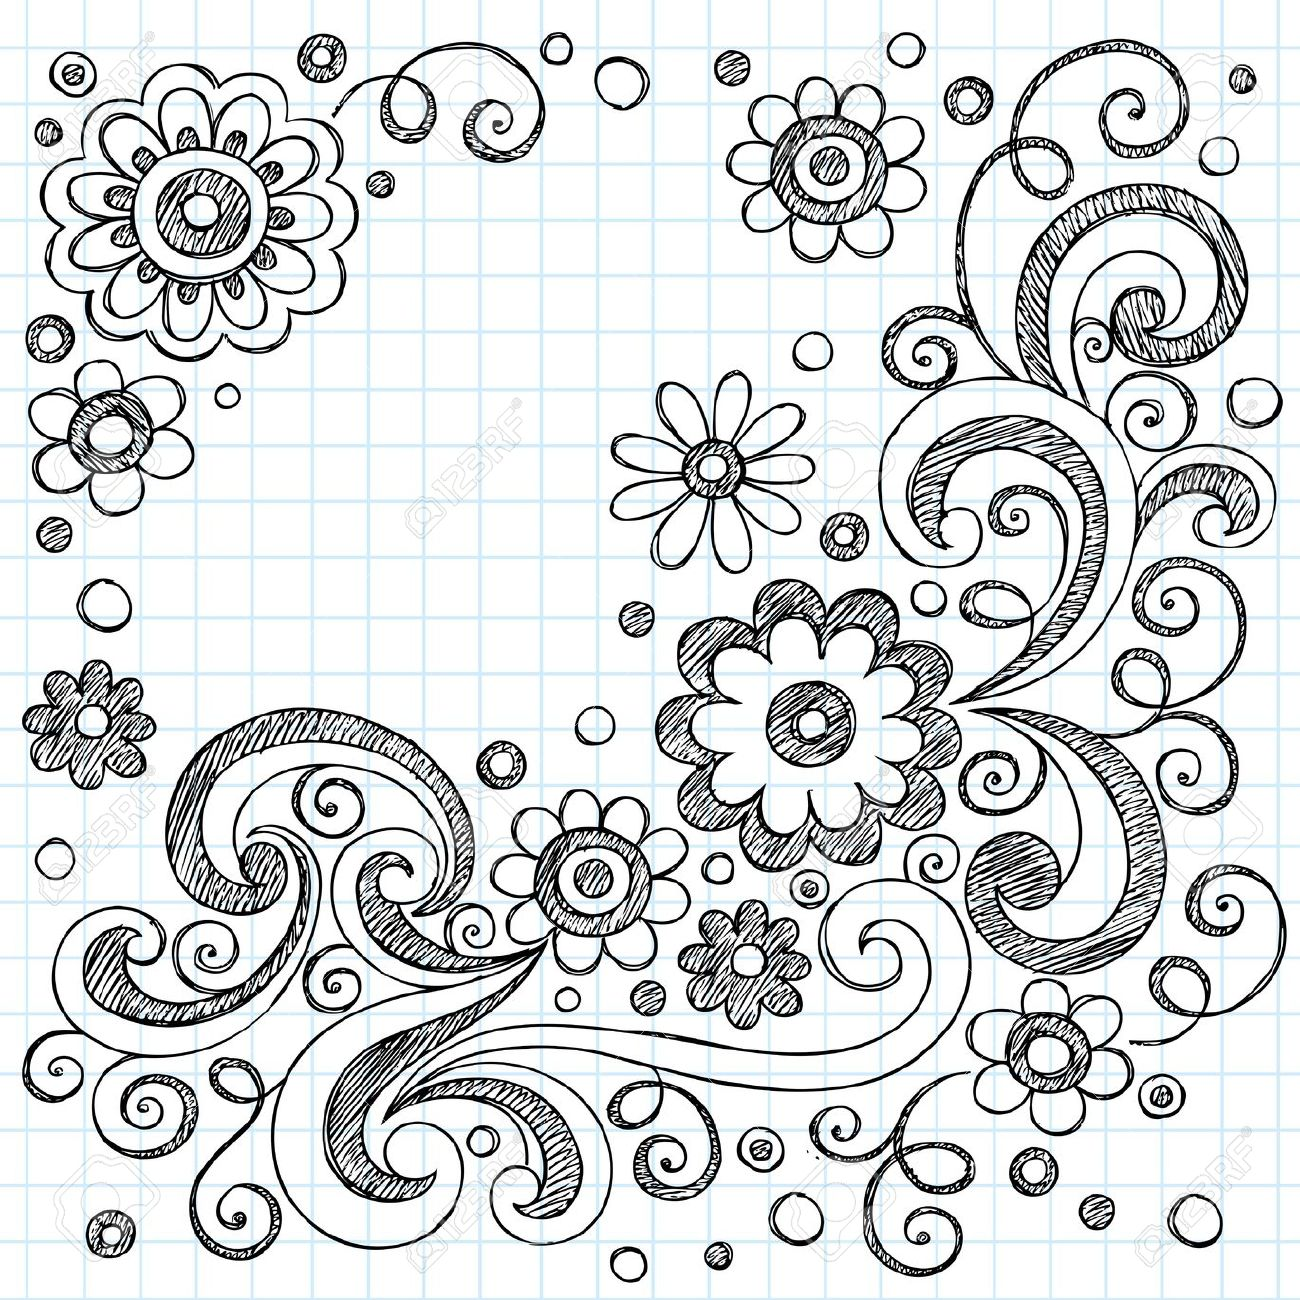 Drawing on lined paper at getdrawings free for personal use 1300x1300 hand drawn flowers back to school sketchy notebook doodles mightylinksfo